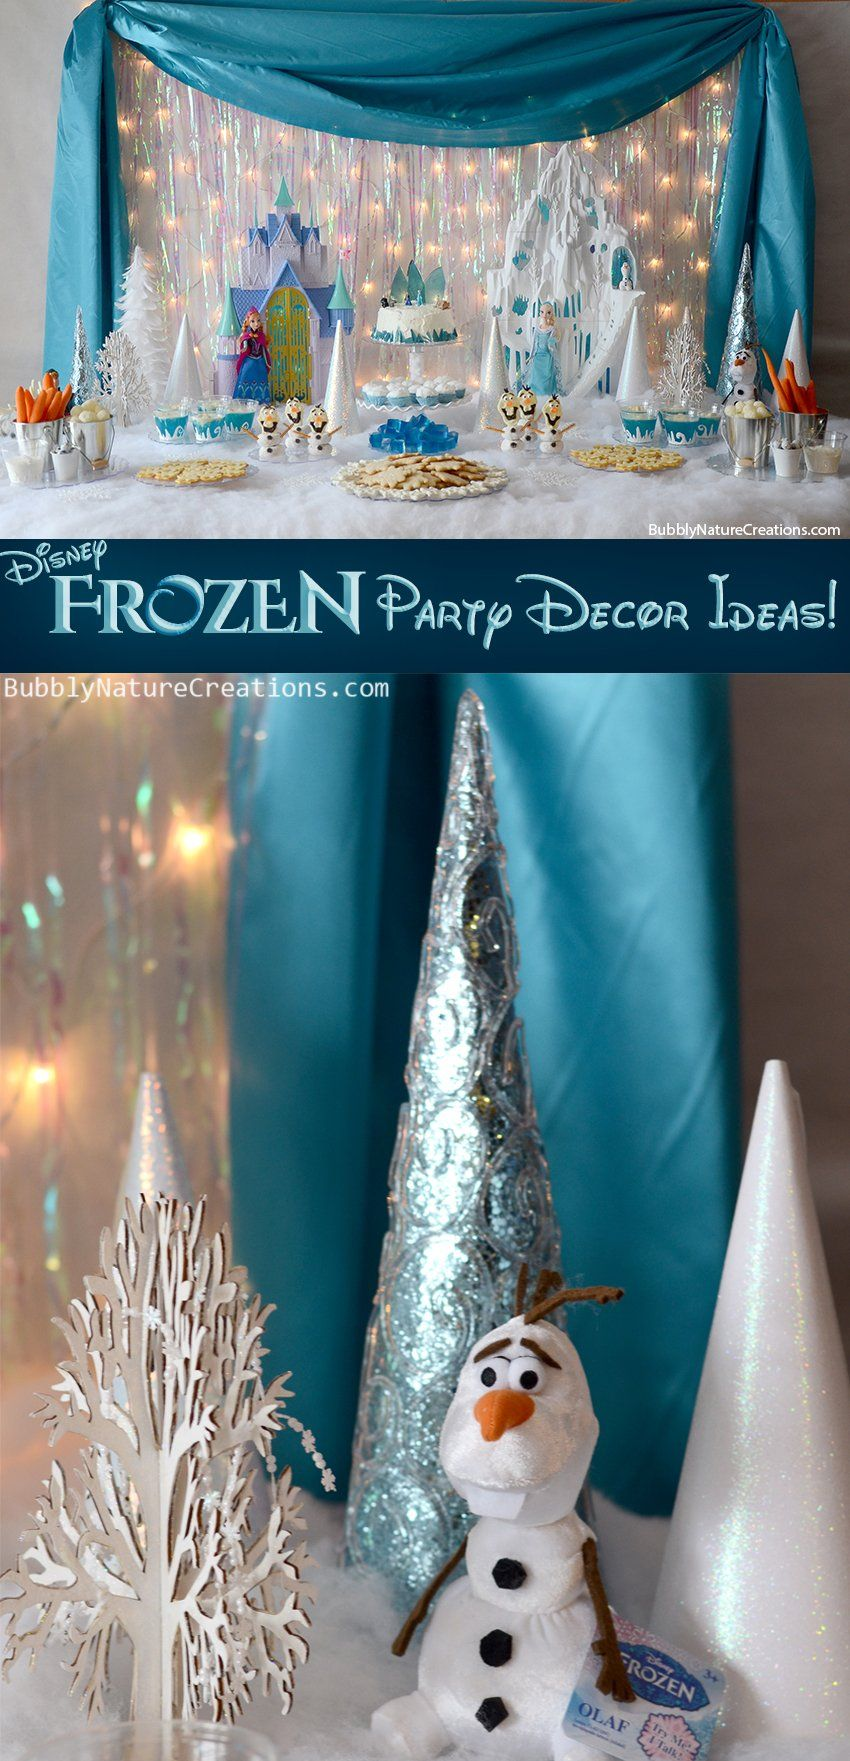 Disney Frozen Birthday Party Ideas Disney Frozen Party Decor Ideas